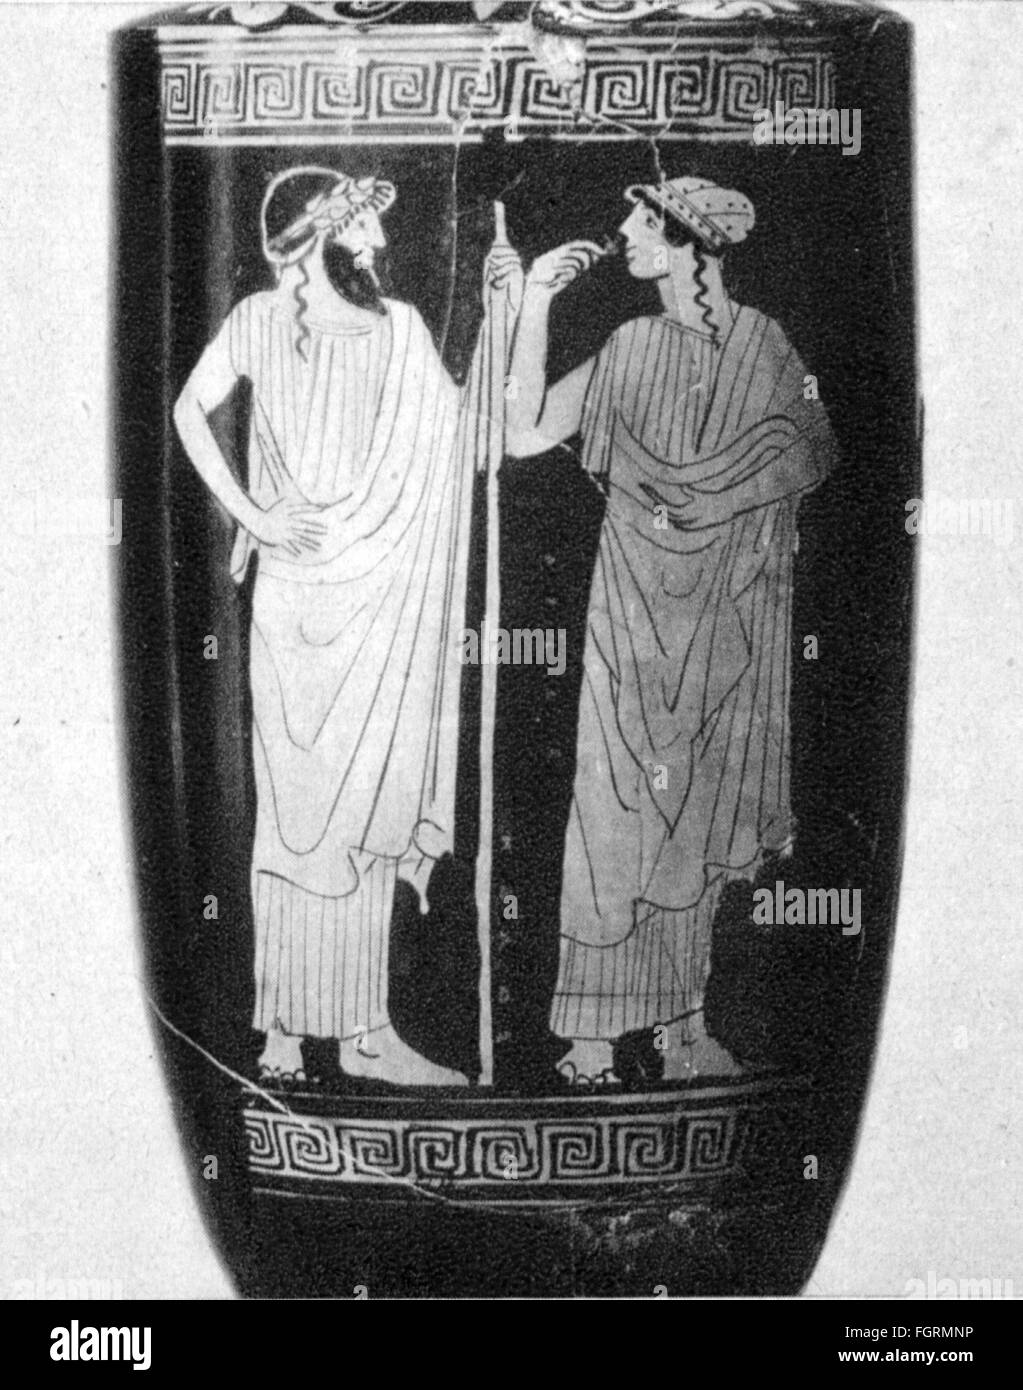 fashion, ancient world, Greece, men's and women's clothing, vase painting, Museum of Art History, Vienna, fine arts, Stock Photo